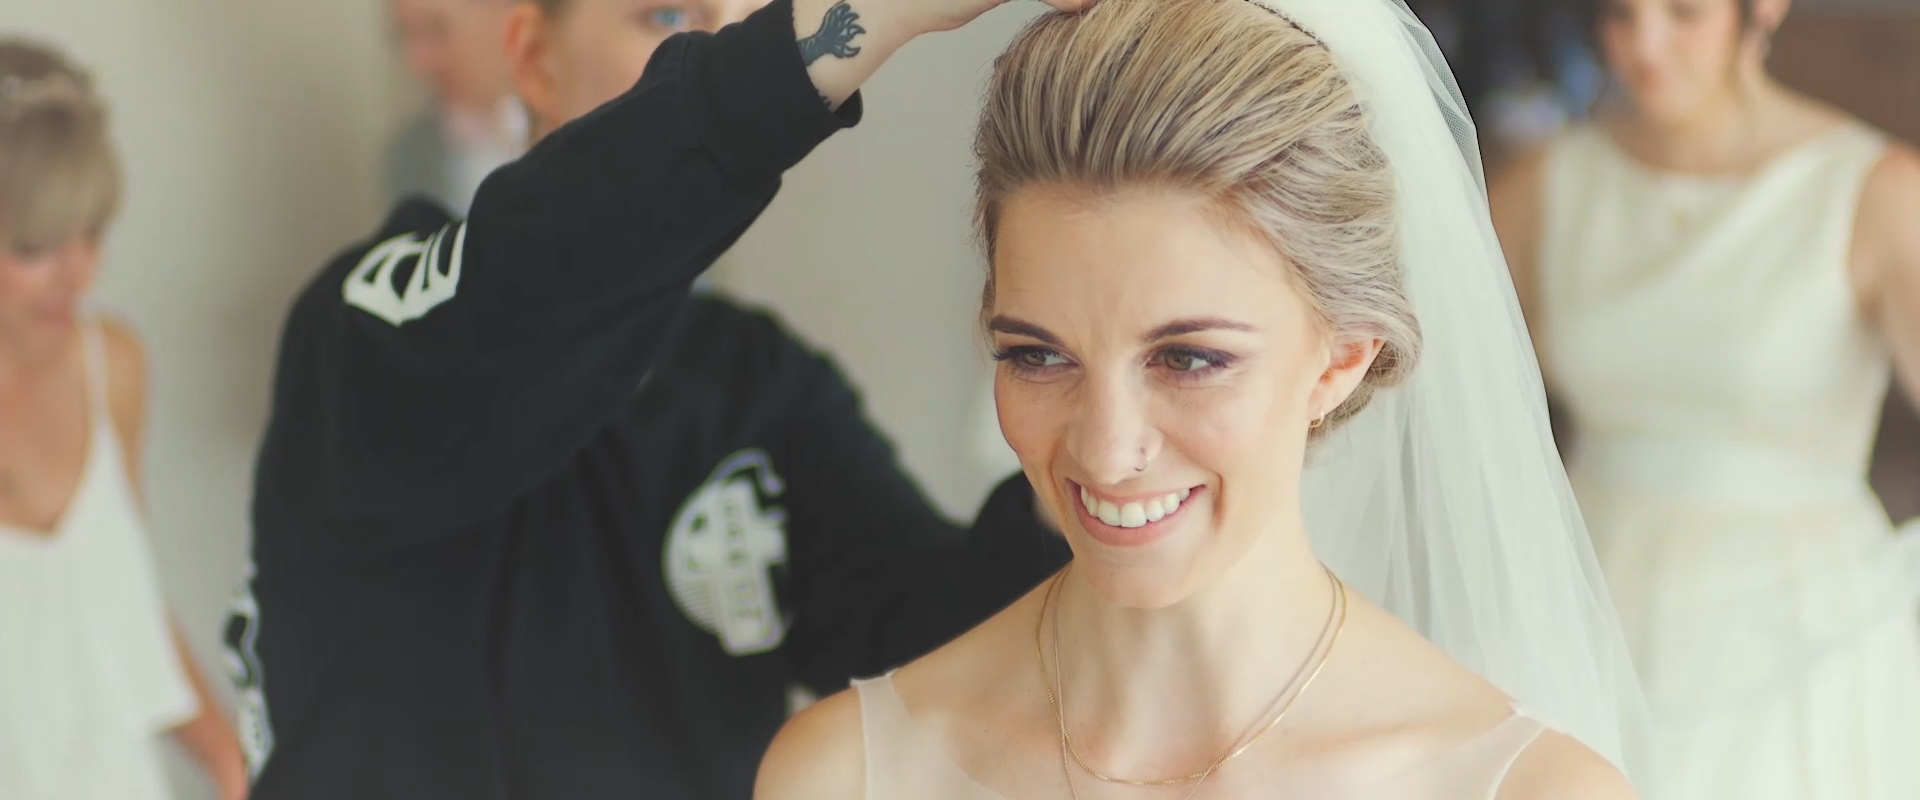 An image of a bride getting her vail placed as she prepare for her wedding day; taken from a Toronto Wedding Video